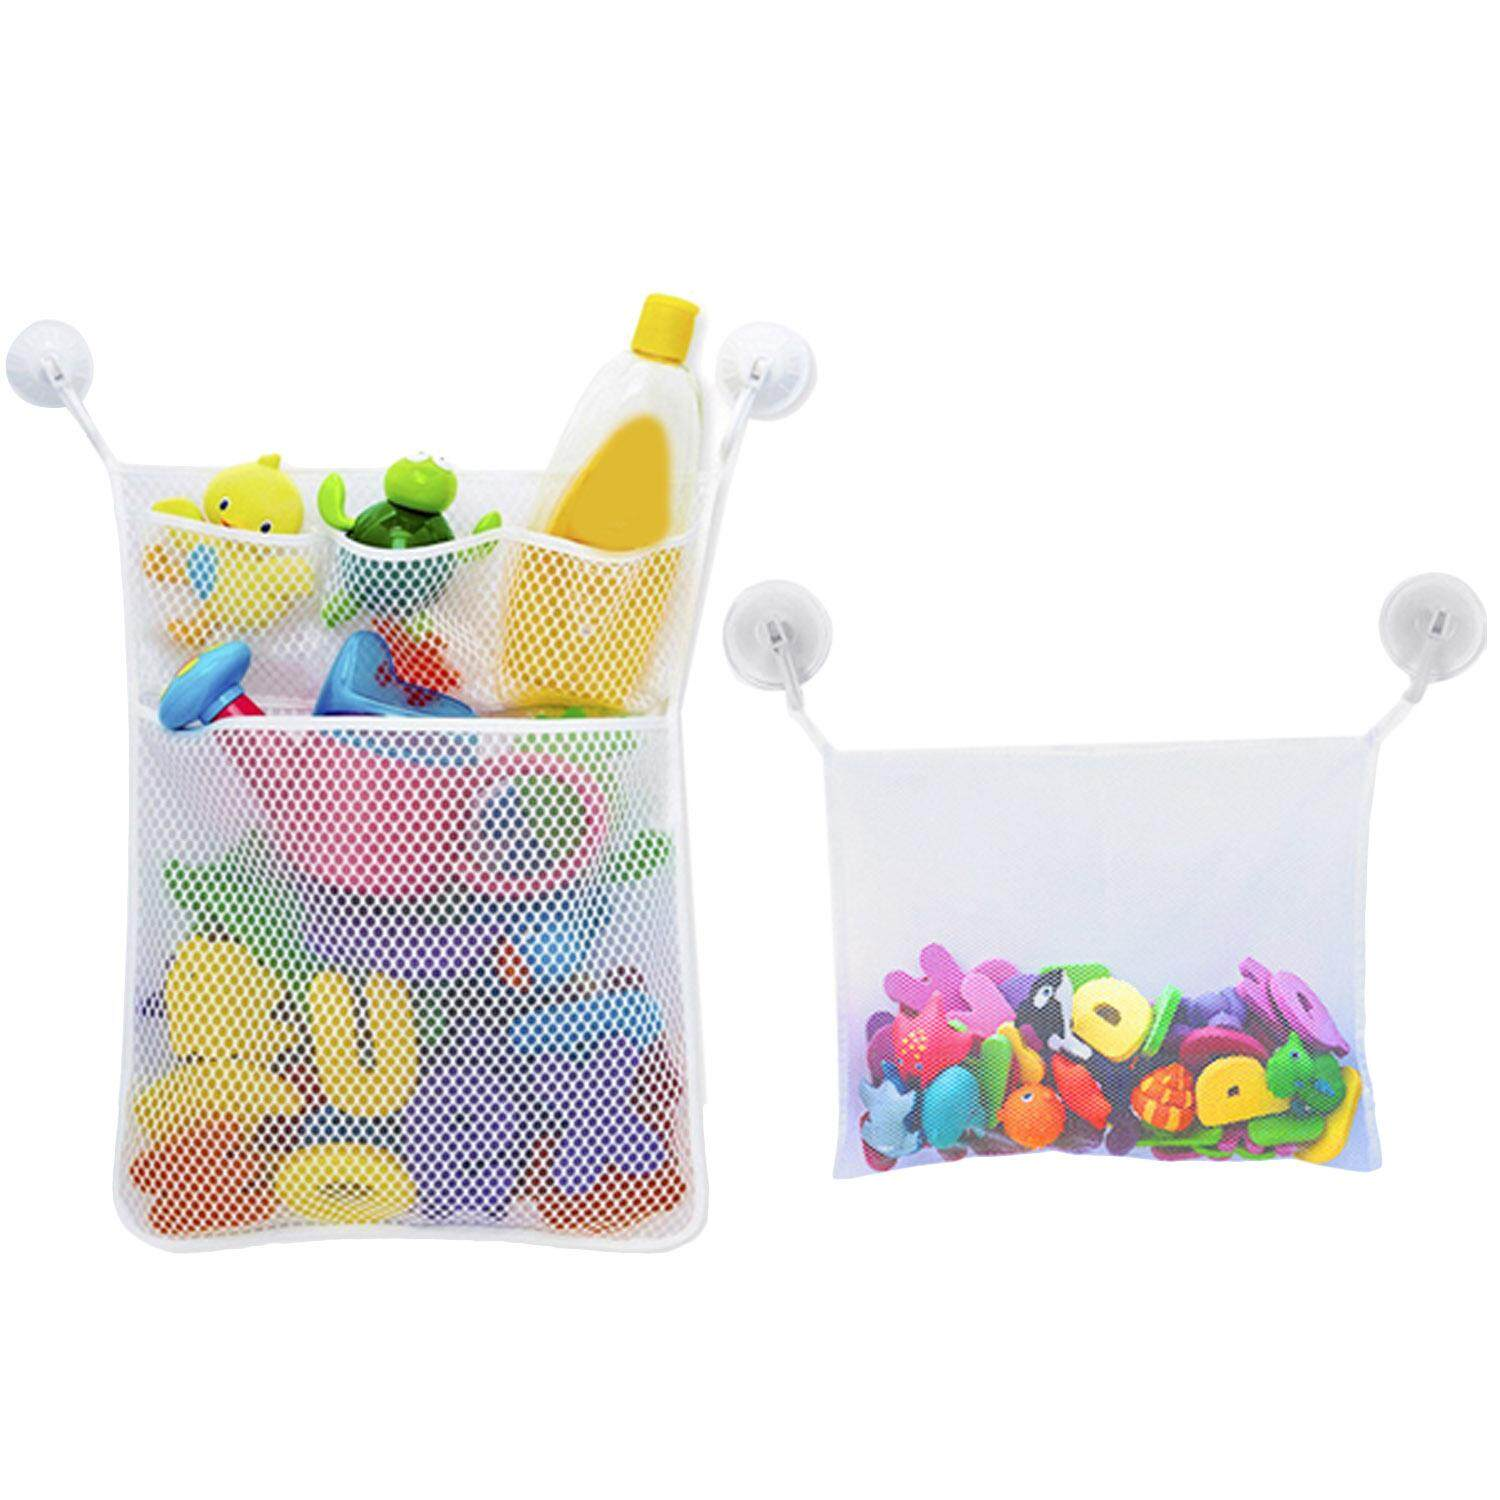 Multi-Use Bath Toy Organizer Net Storage Bag With 2pcs Strong Hooked Suction Cups For Toys Soap Shampoo Toothpaste White By Elek.